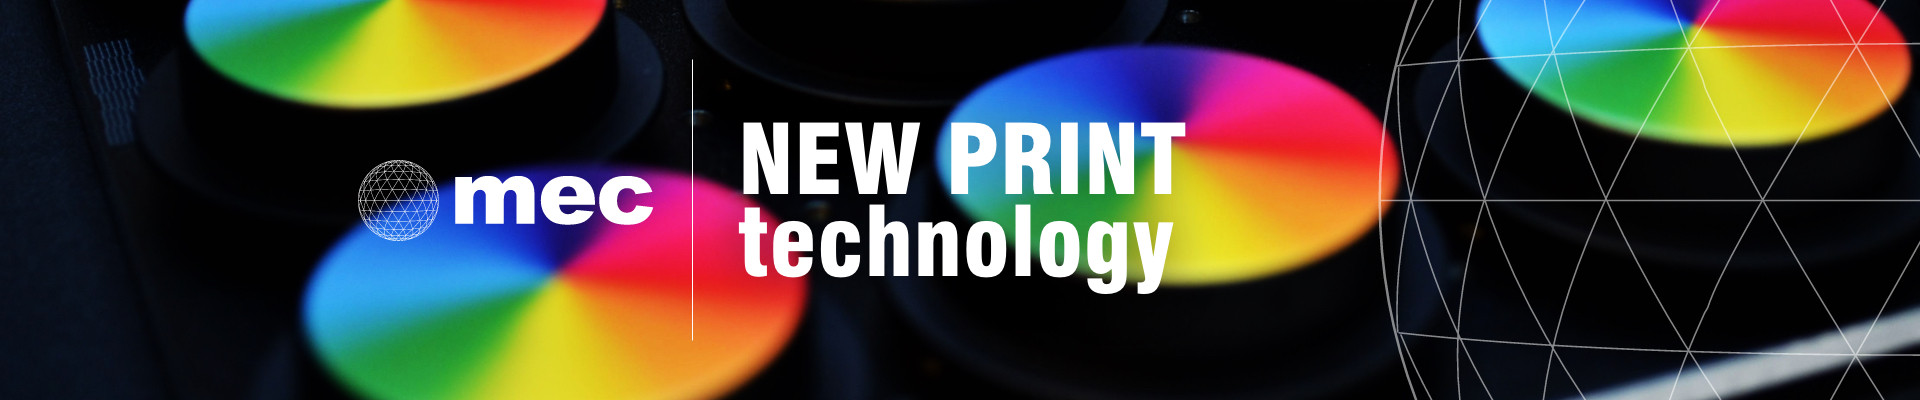 NEW PRINT TECHNOLOGY, NEW POSSIBILITIES